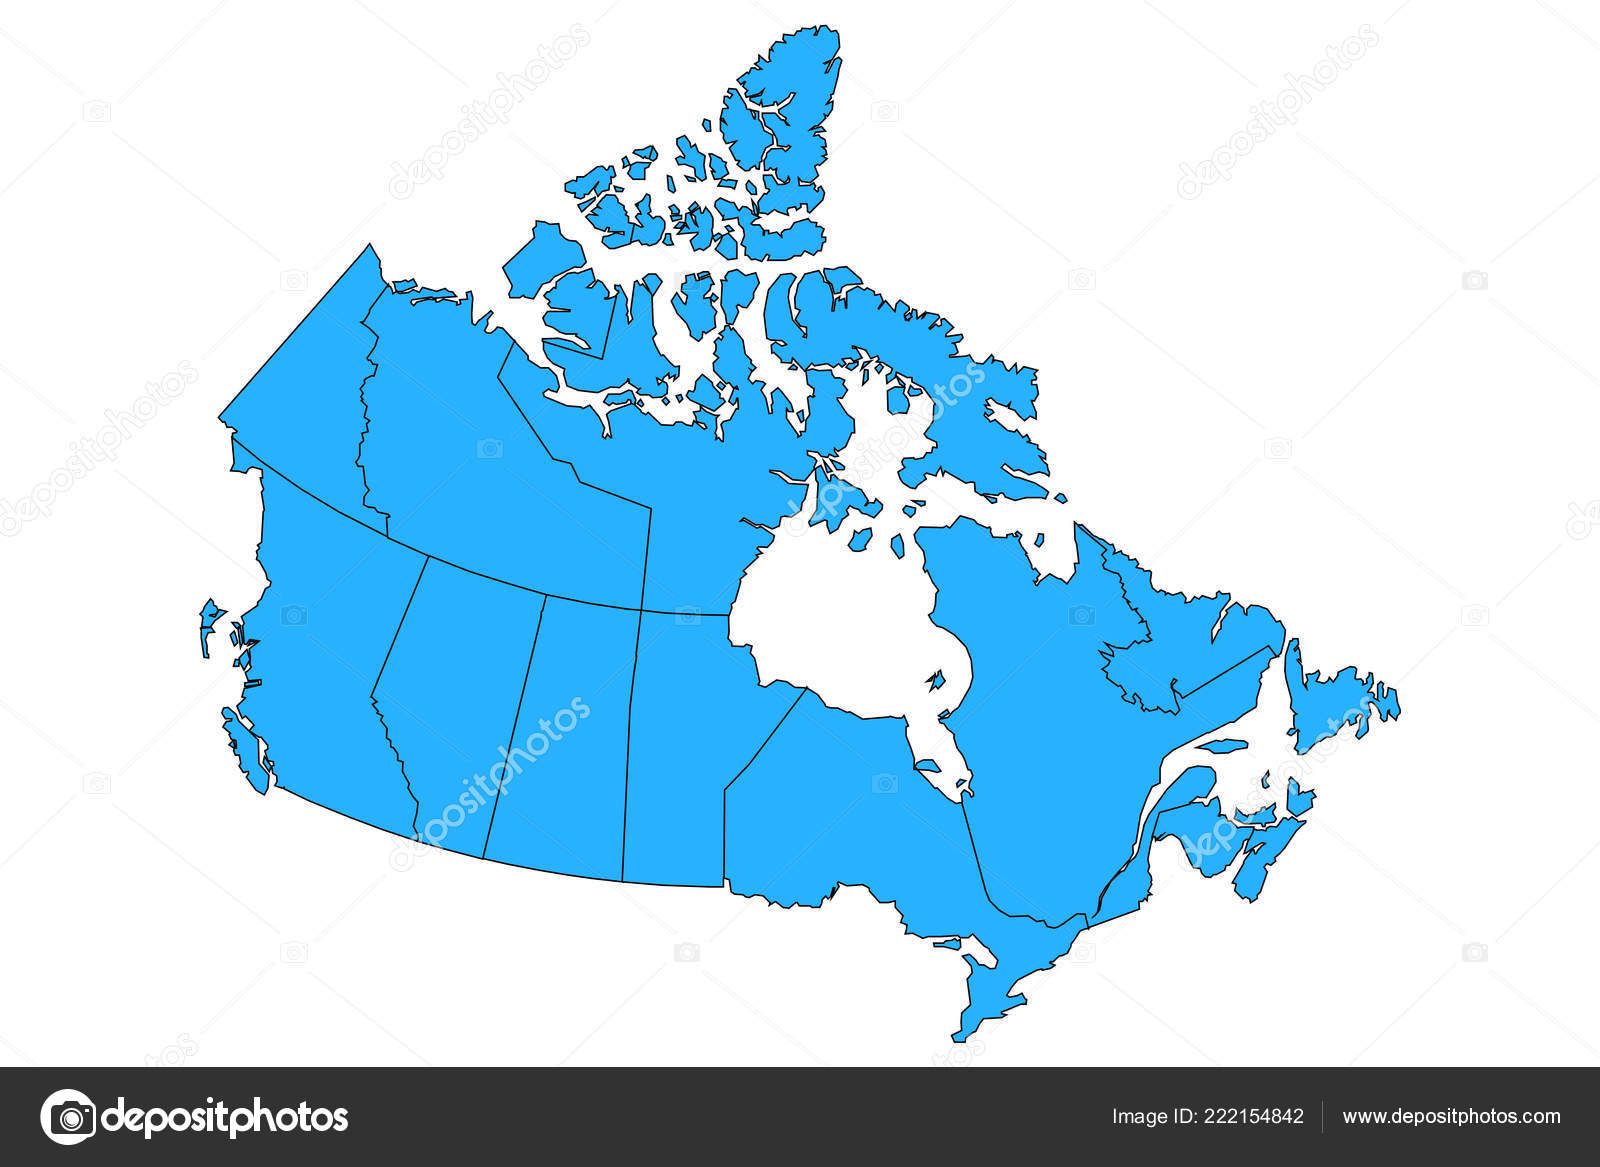 Map Of Canada With Territories.Vector Map Canada Provinces Territories Borders Stock Vector